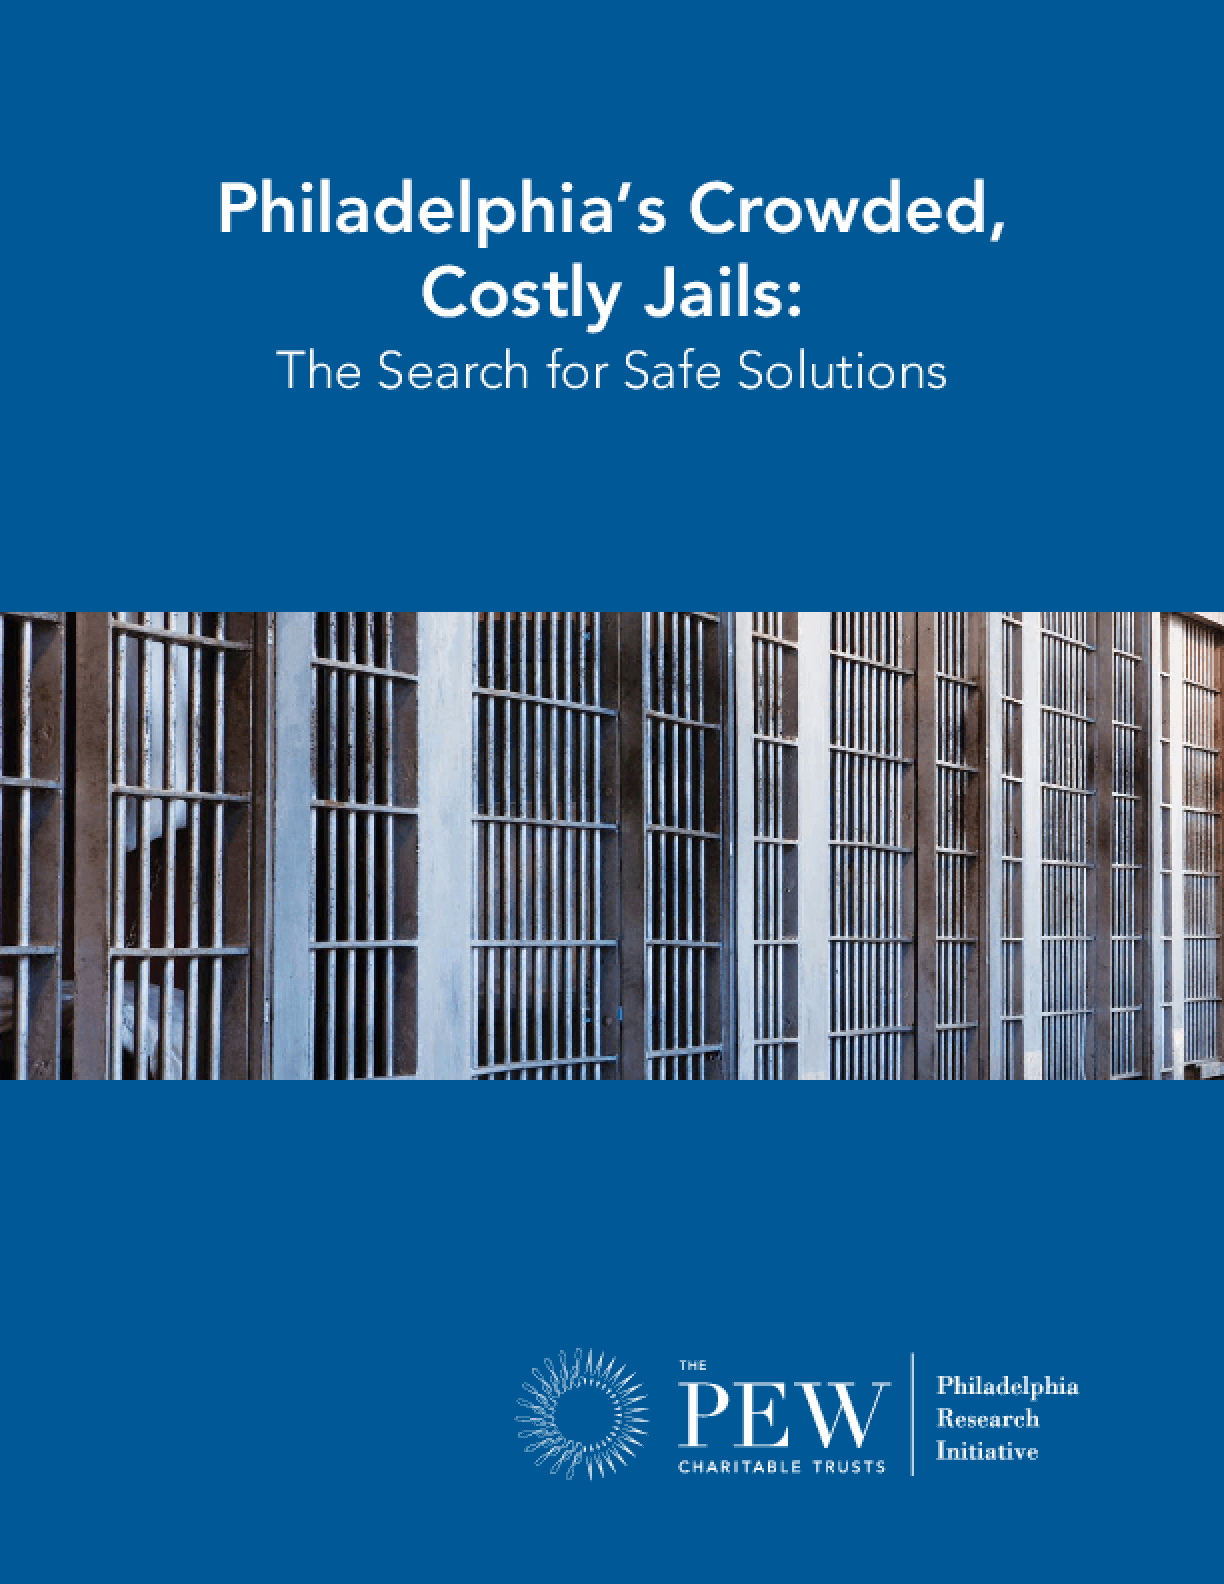 Philadelphia's Crowded, Costly Jails: The Search for Safe Solutions